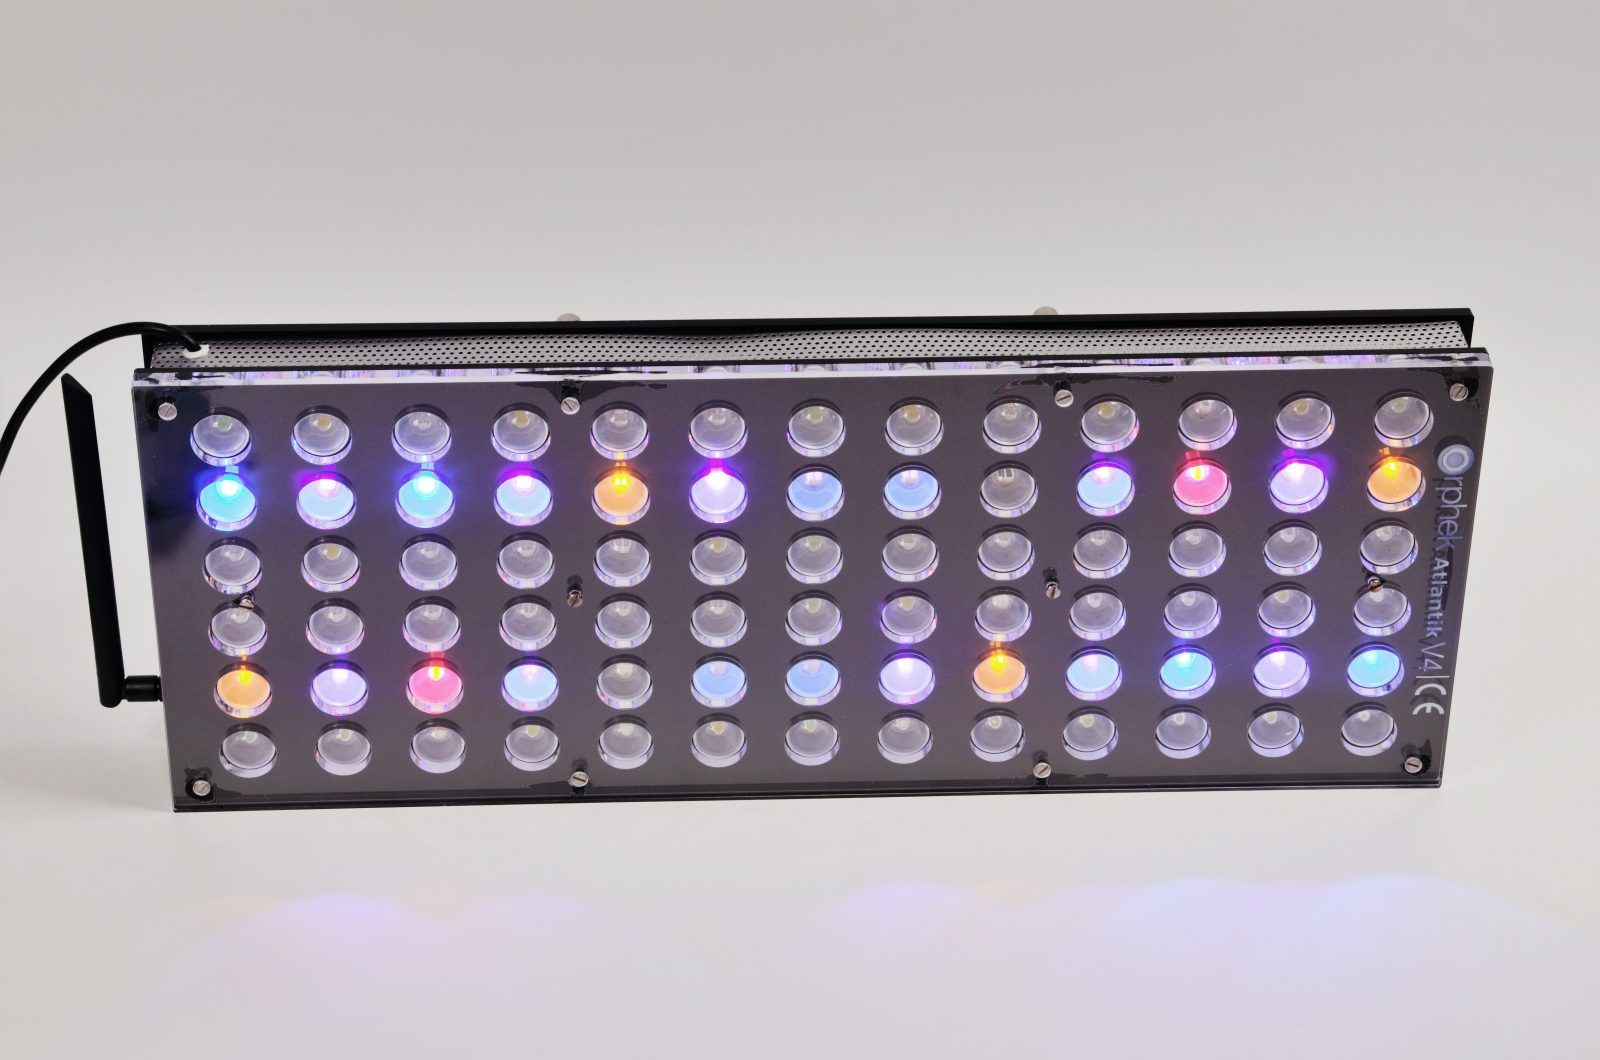 Orphek-Aquarium-LED-Lighting-Reef-Atlantik-V4-light-on-channel 3+4